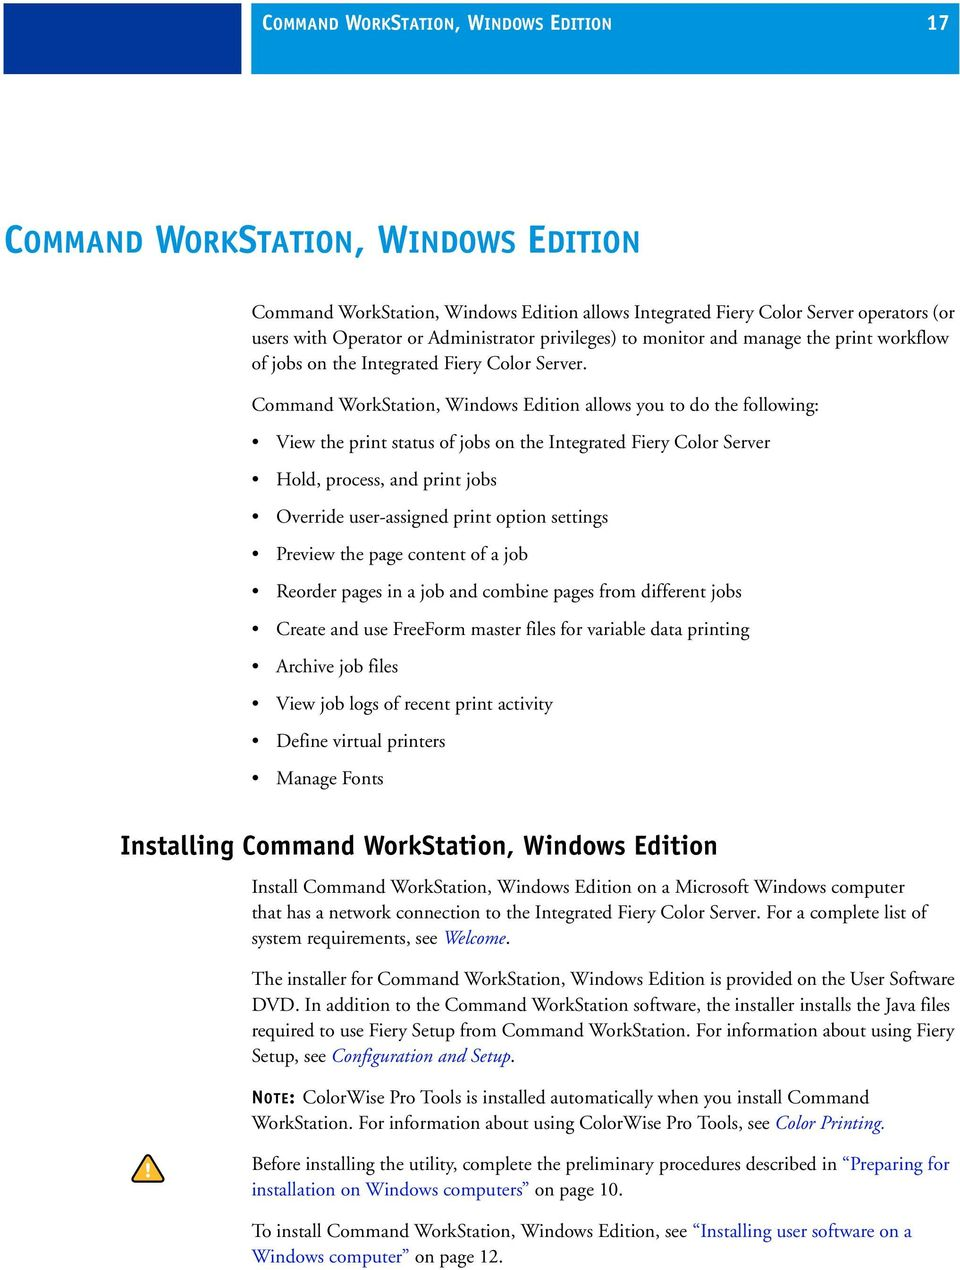 Command WorkStation, Windows Edition allows you to do the following: View the print status of jobs on the Integrated Fiery Color Server Hold, process, and print jobs Override user-assigned print